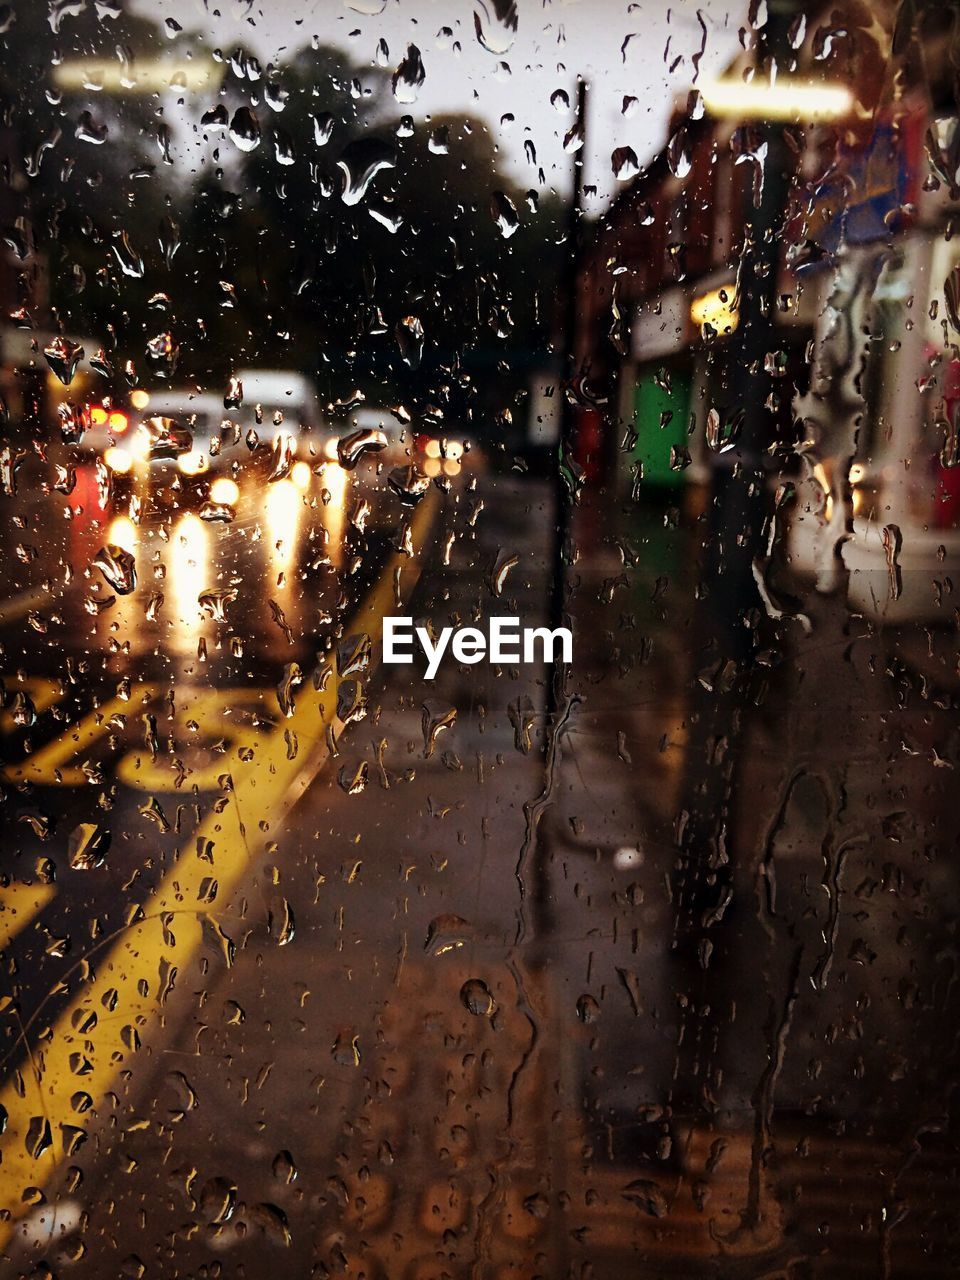 Full frame image of wet glass window with rain